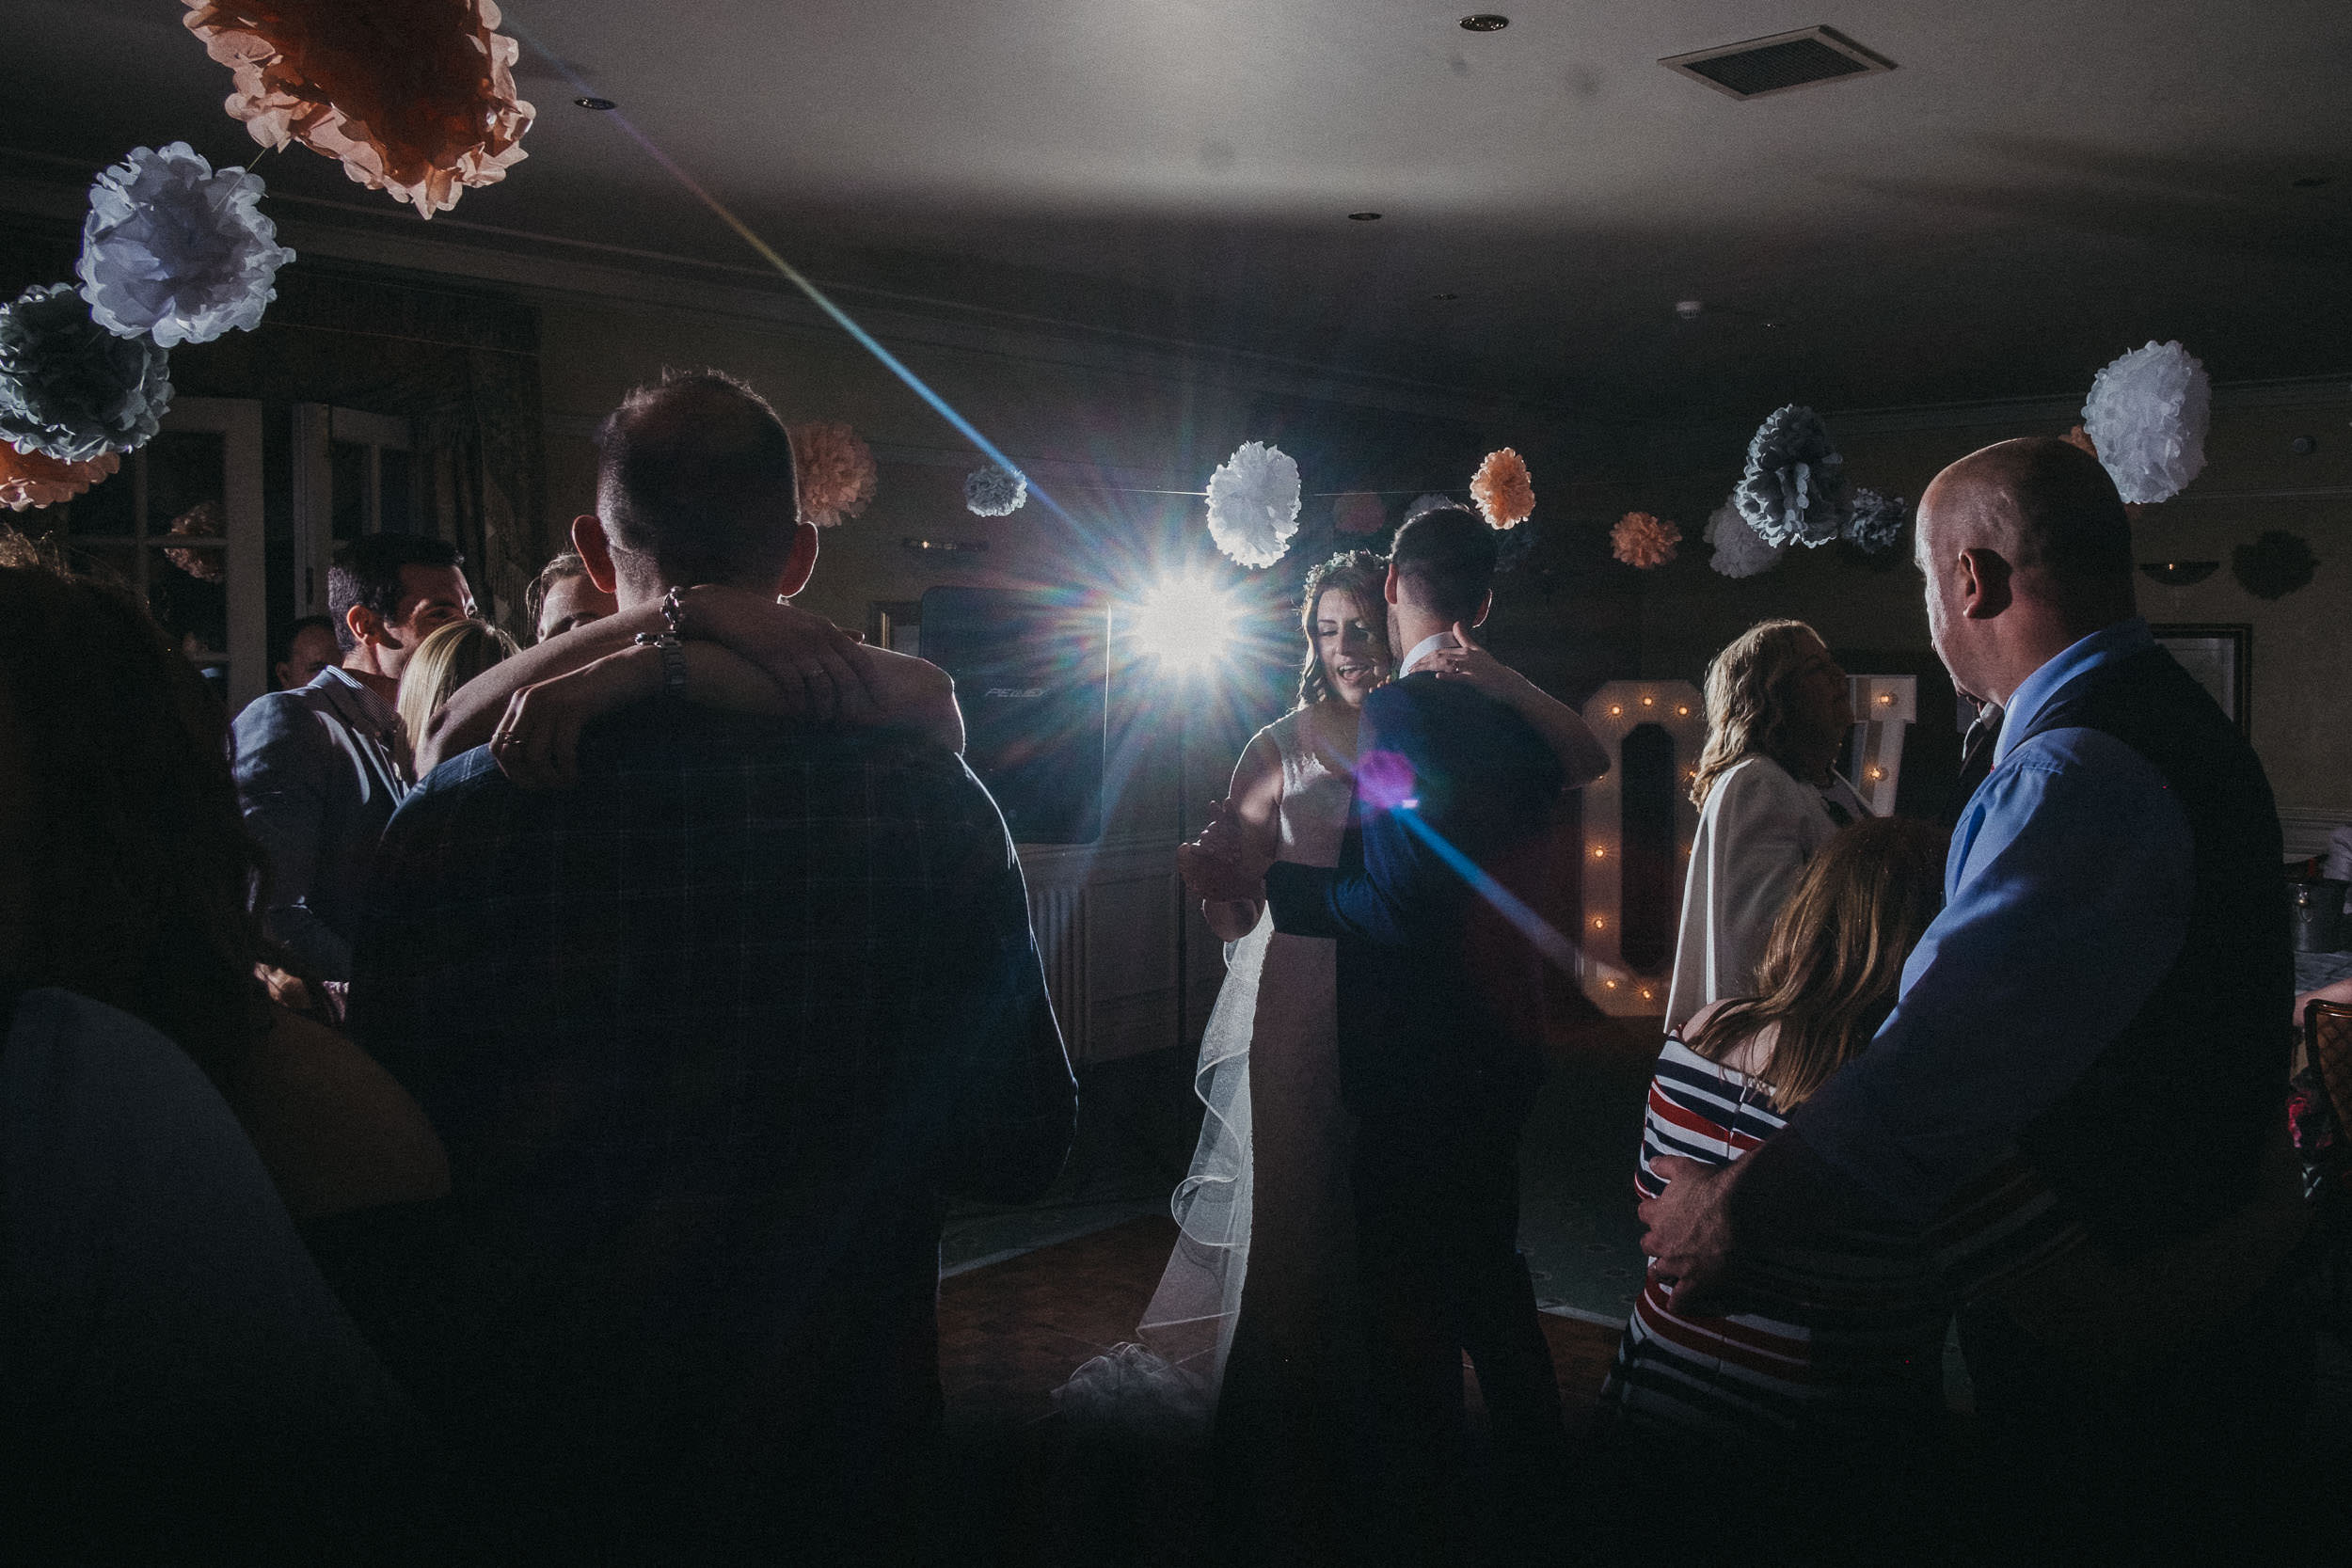 Guests join bride and groom on dance floor after first dance